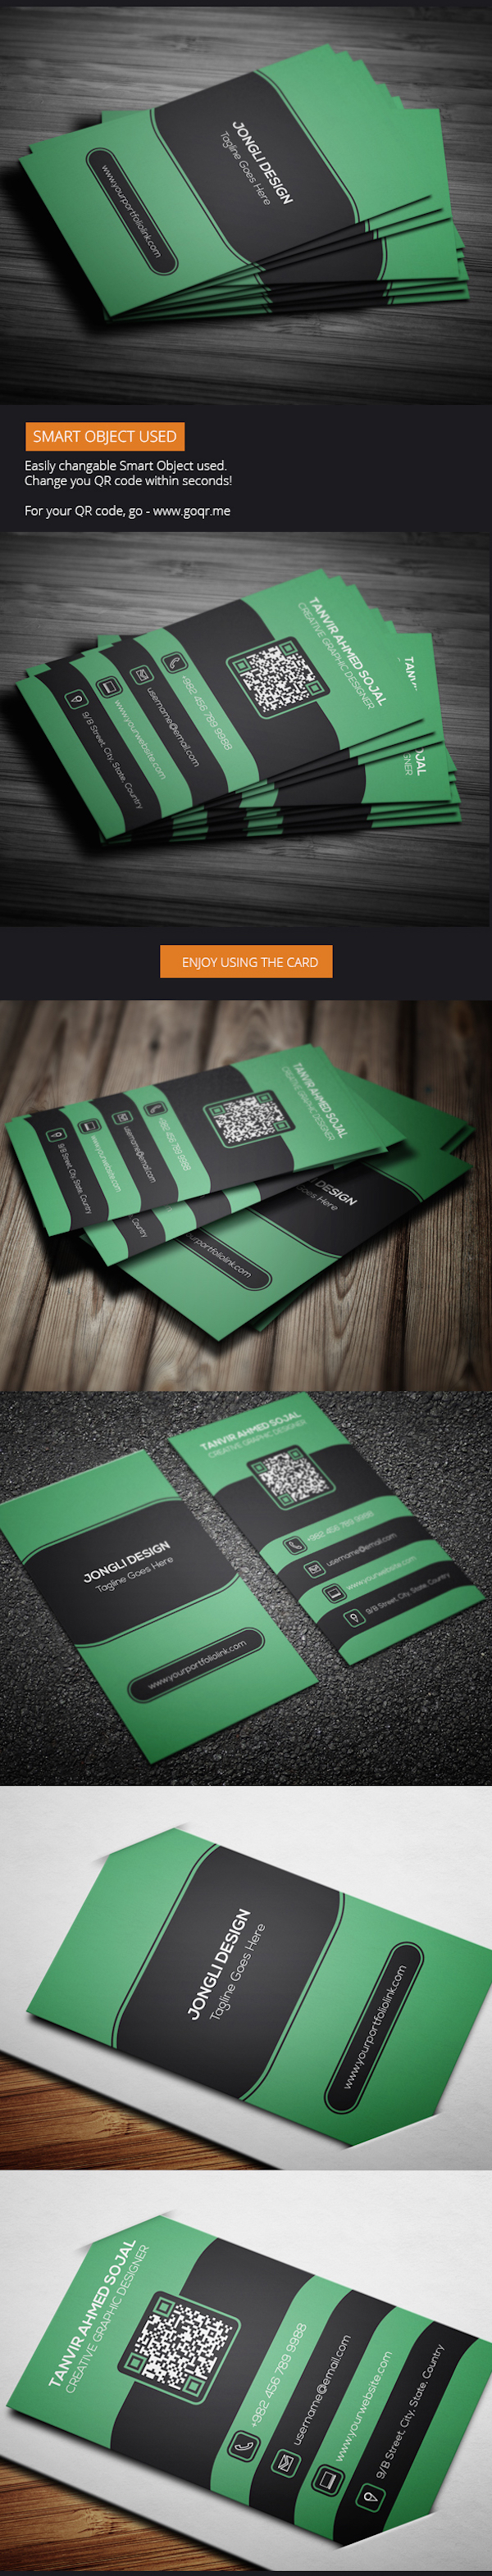 40 latest free business card psd templates devzum free business card psd templates colourmoves